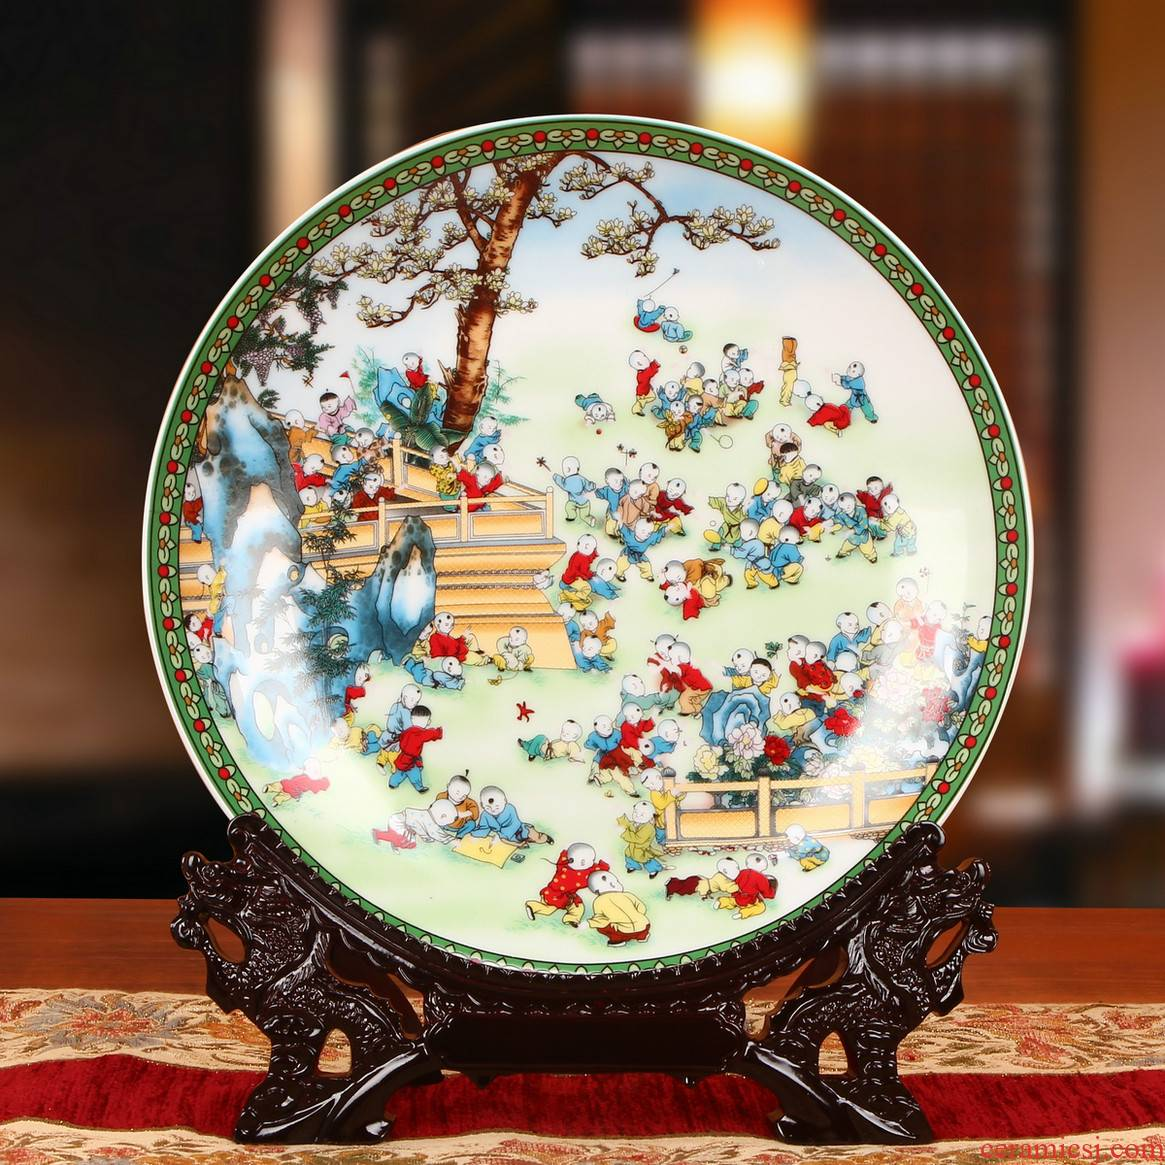 Jingdezhen ceramics colorful figure sat the ancient philosophers hang dish plate faceplate wedding gift decoration home furnishing articles